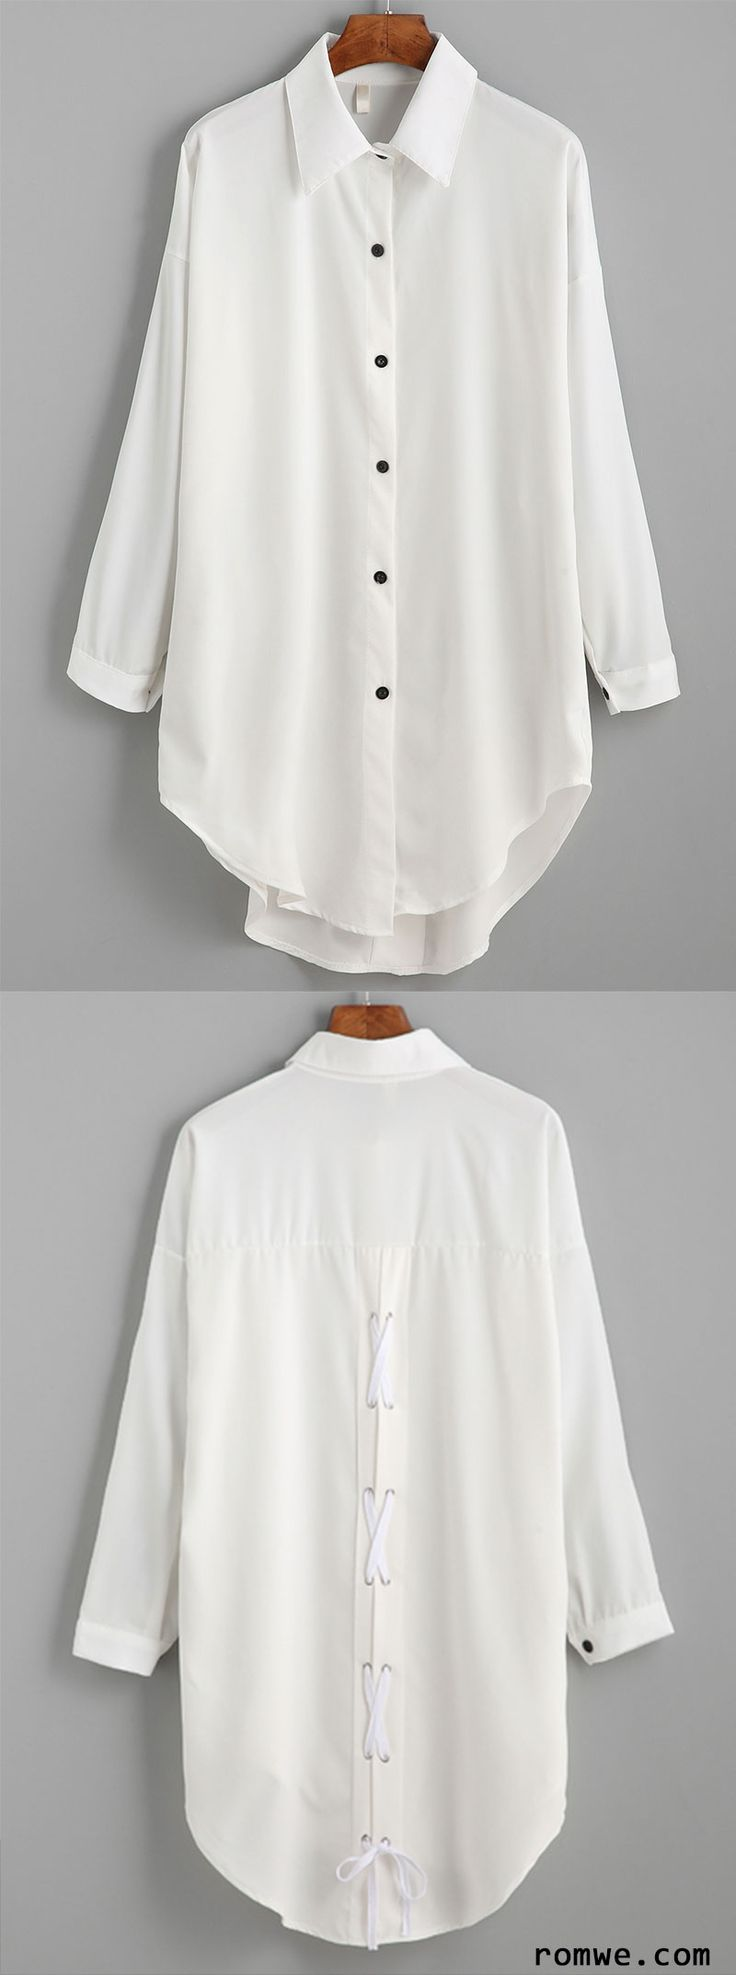 White Drop Shoulder Lace Up Back Dip Hem Shirt with special design and timeless colorway from romwe.com